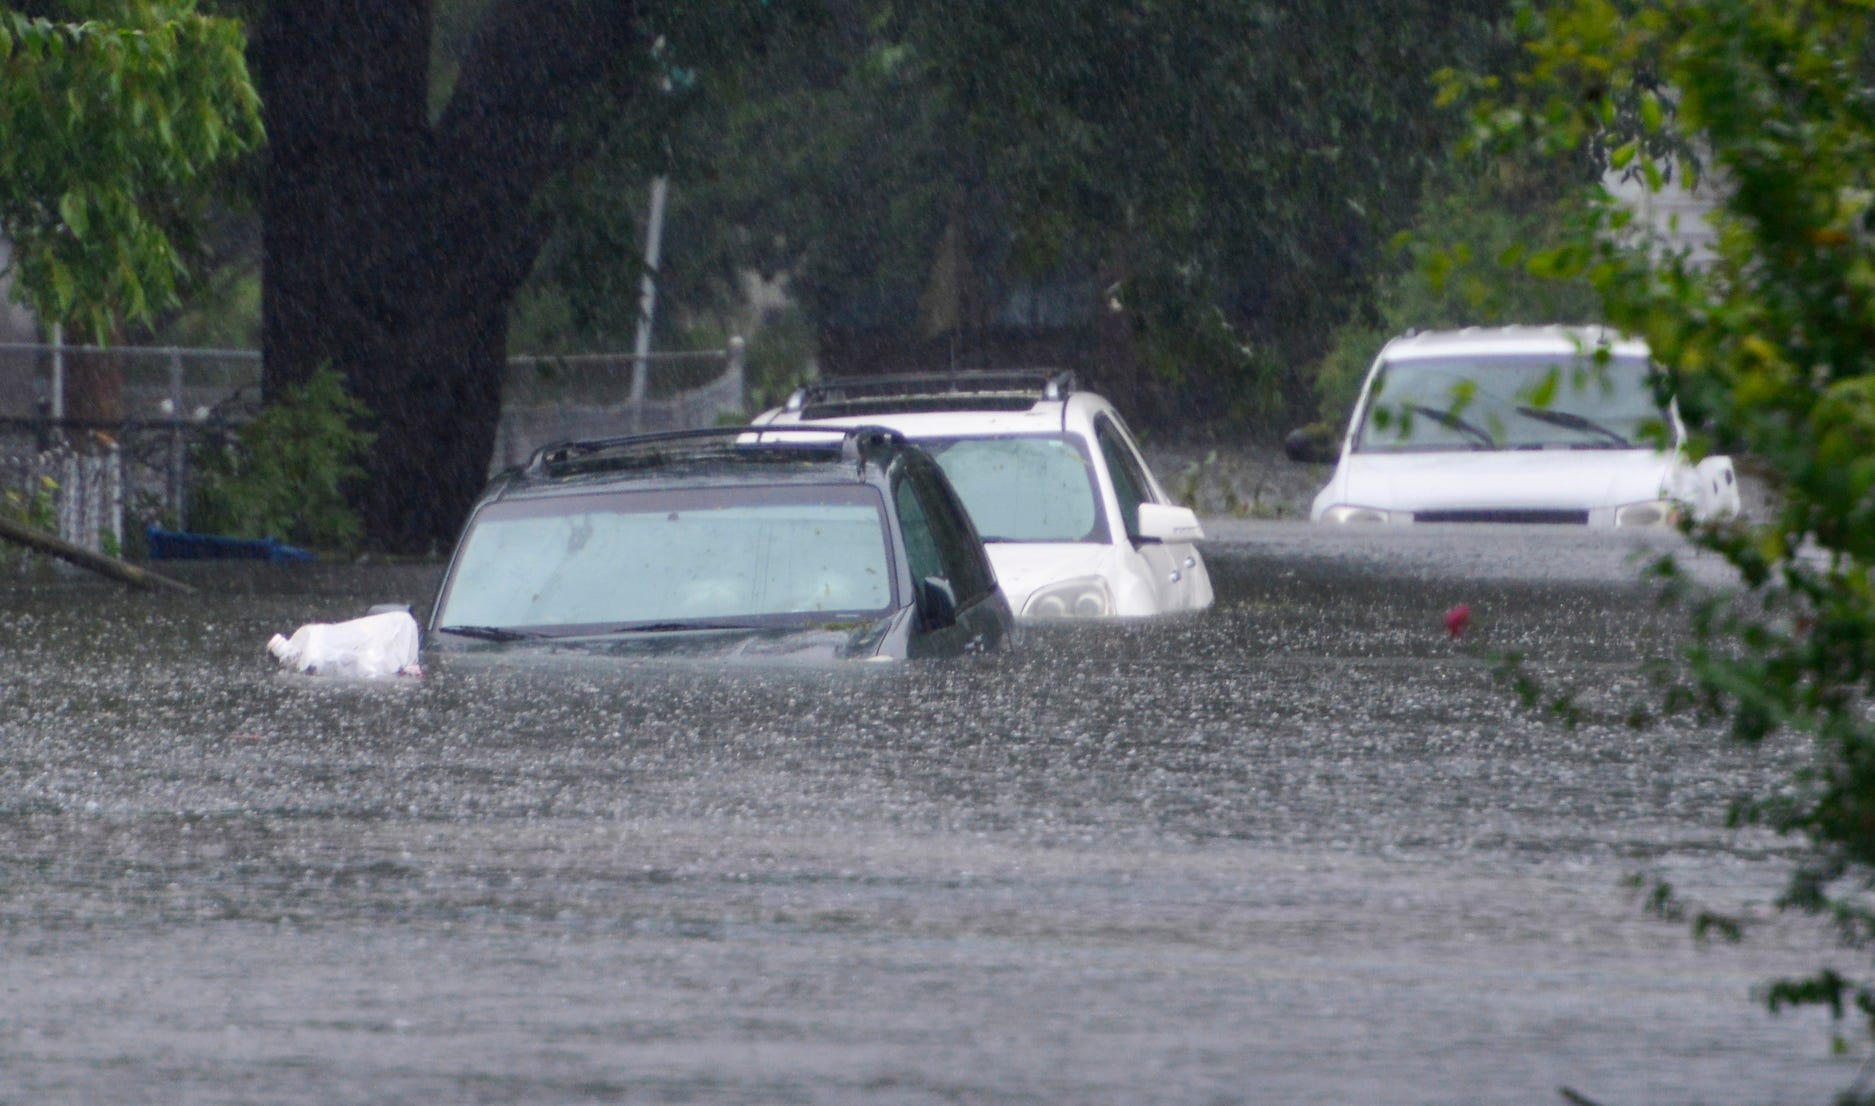 Hurricane Florence brought enough rain to cover the cars parked on 6th St in Washington, N.C. up to the hood with water on Friday afternoon on Sept. 14, 2018.